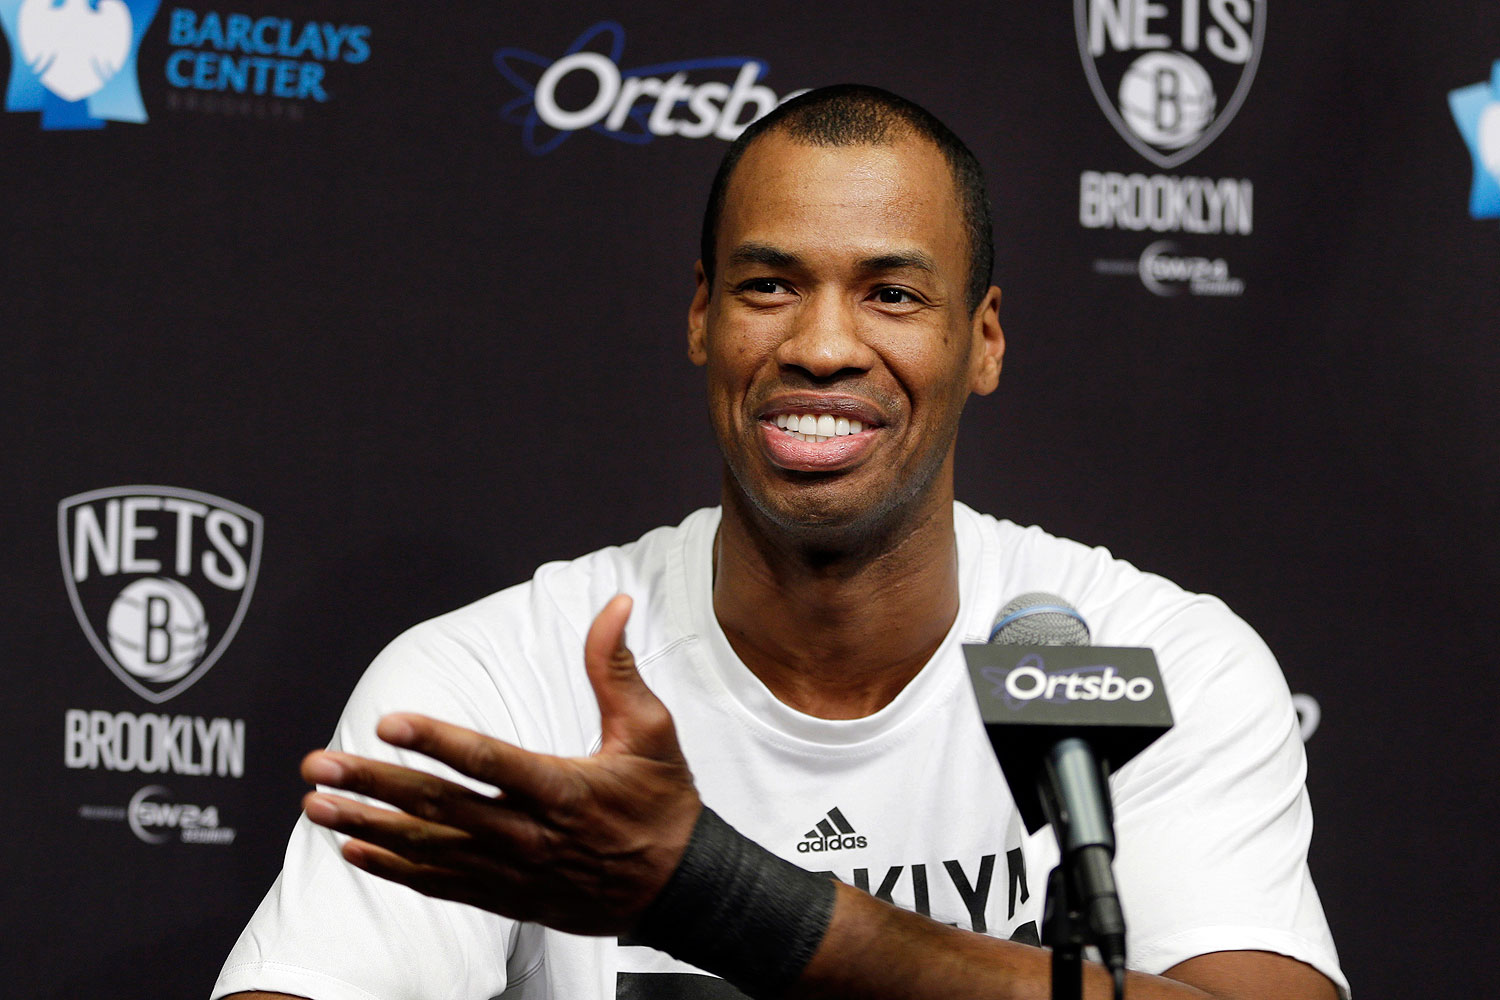 Brooklyn Nets Jason Collins speaks during a news conference before an NBA basketball game against the Chicago Bulls at the Barclays Center, Monday, Mar. 3, 2014, in New York